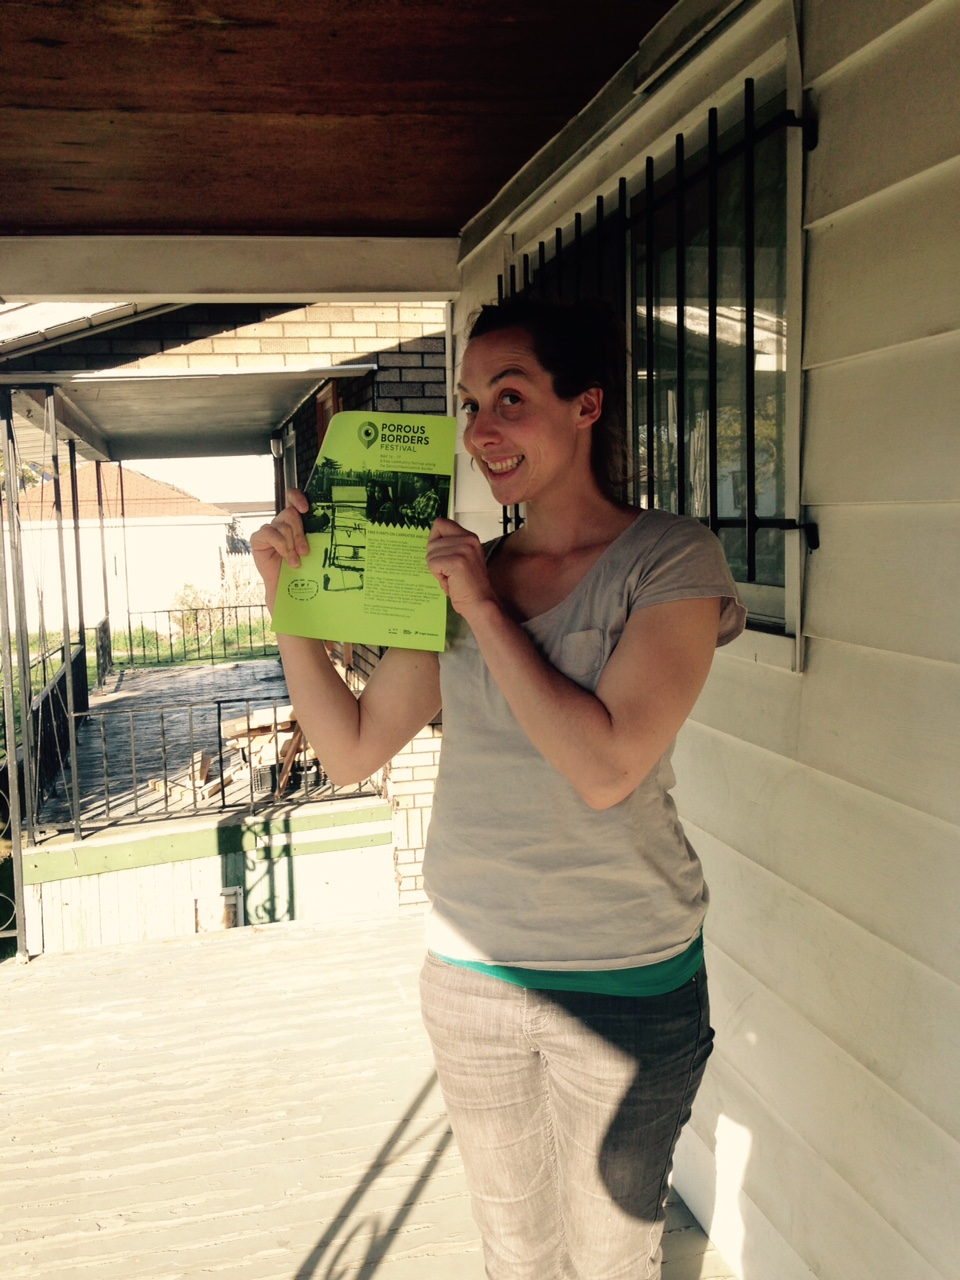 Liza Bielby holding a Porous Borders flyer